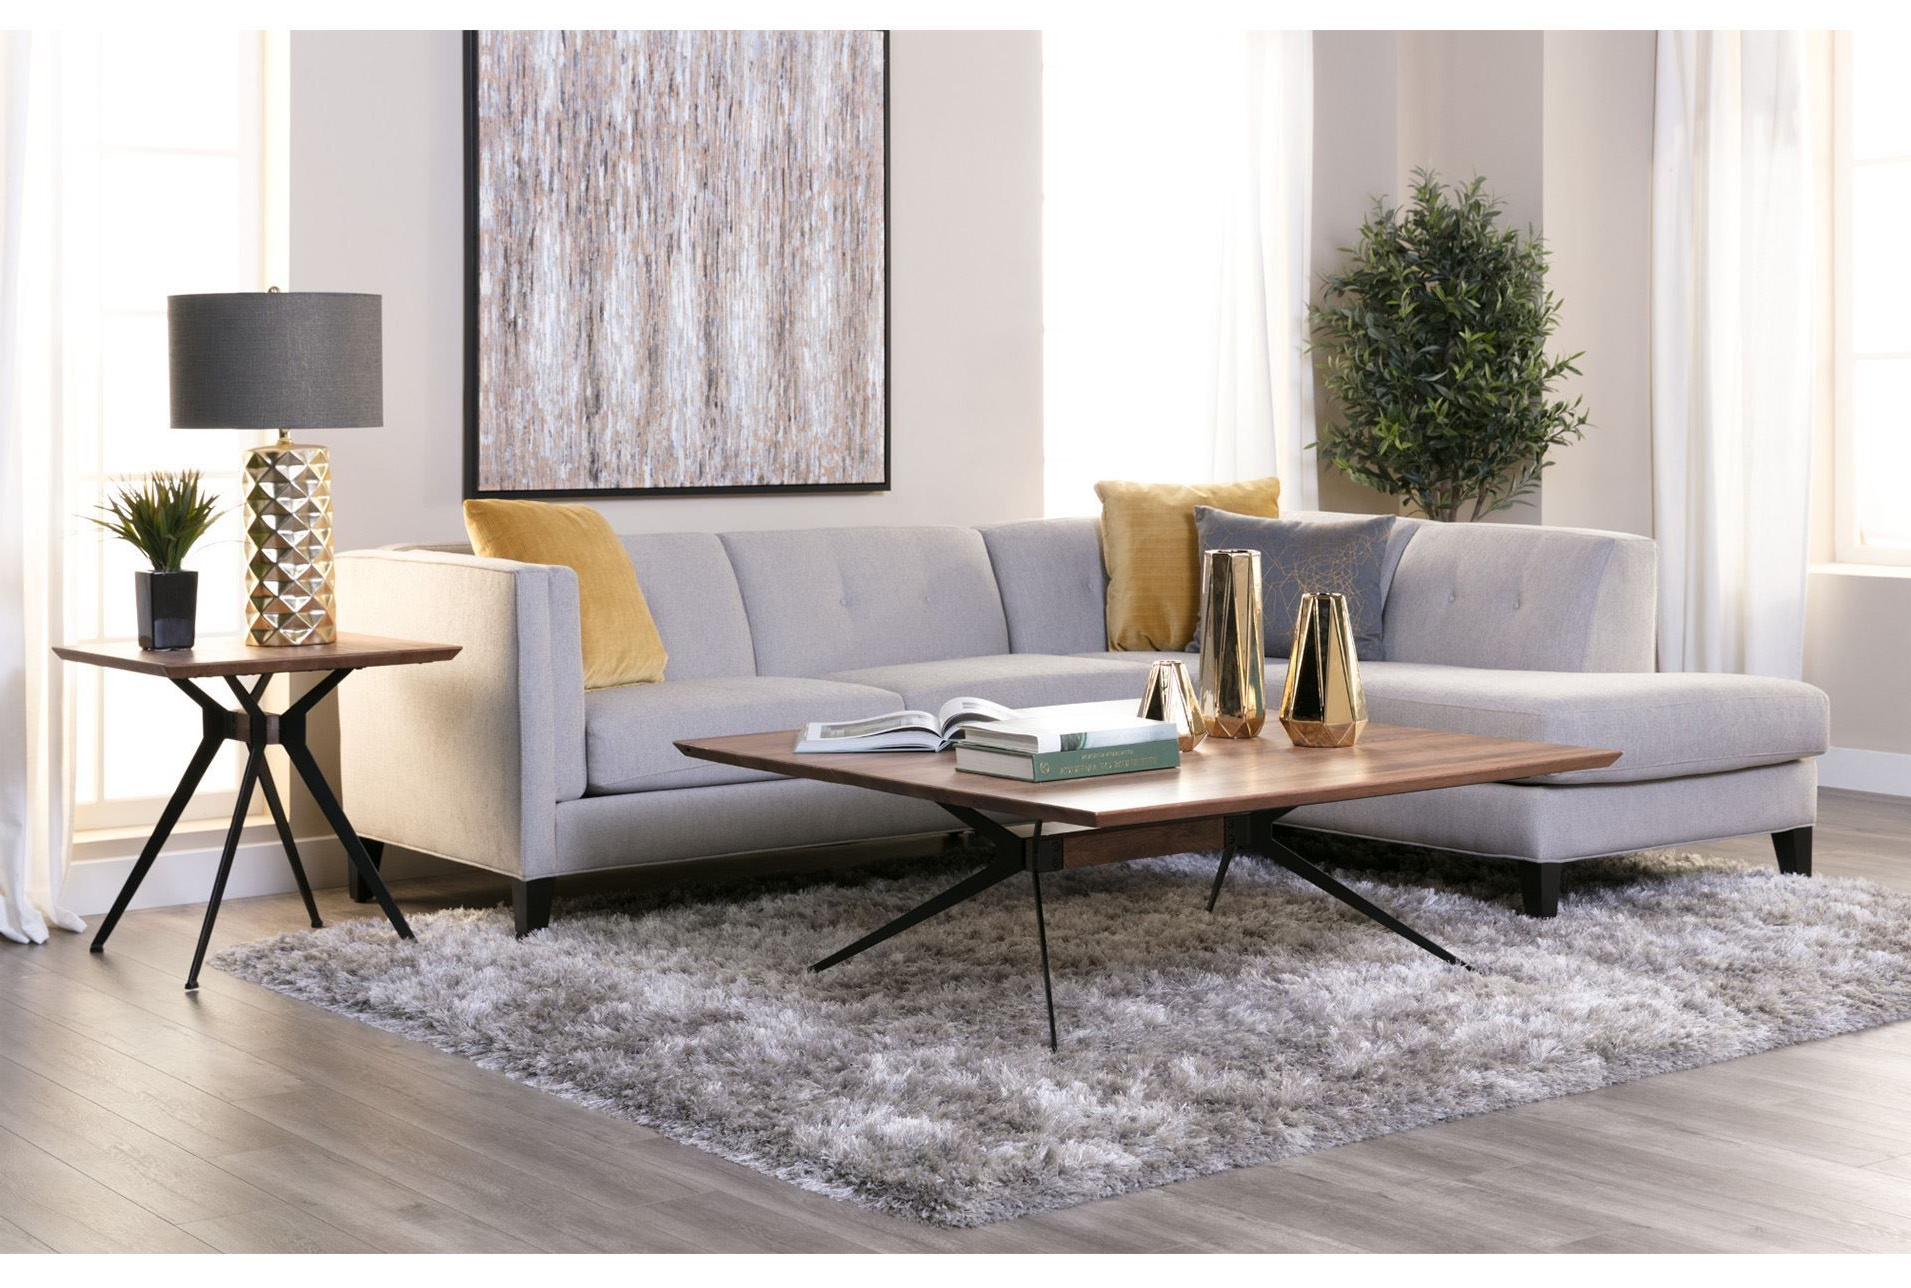 Home Decor/interior Regarding Preferred Avery 2 Piece Sectionals With Raf Armless Chaise (View 2 of 20)